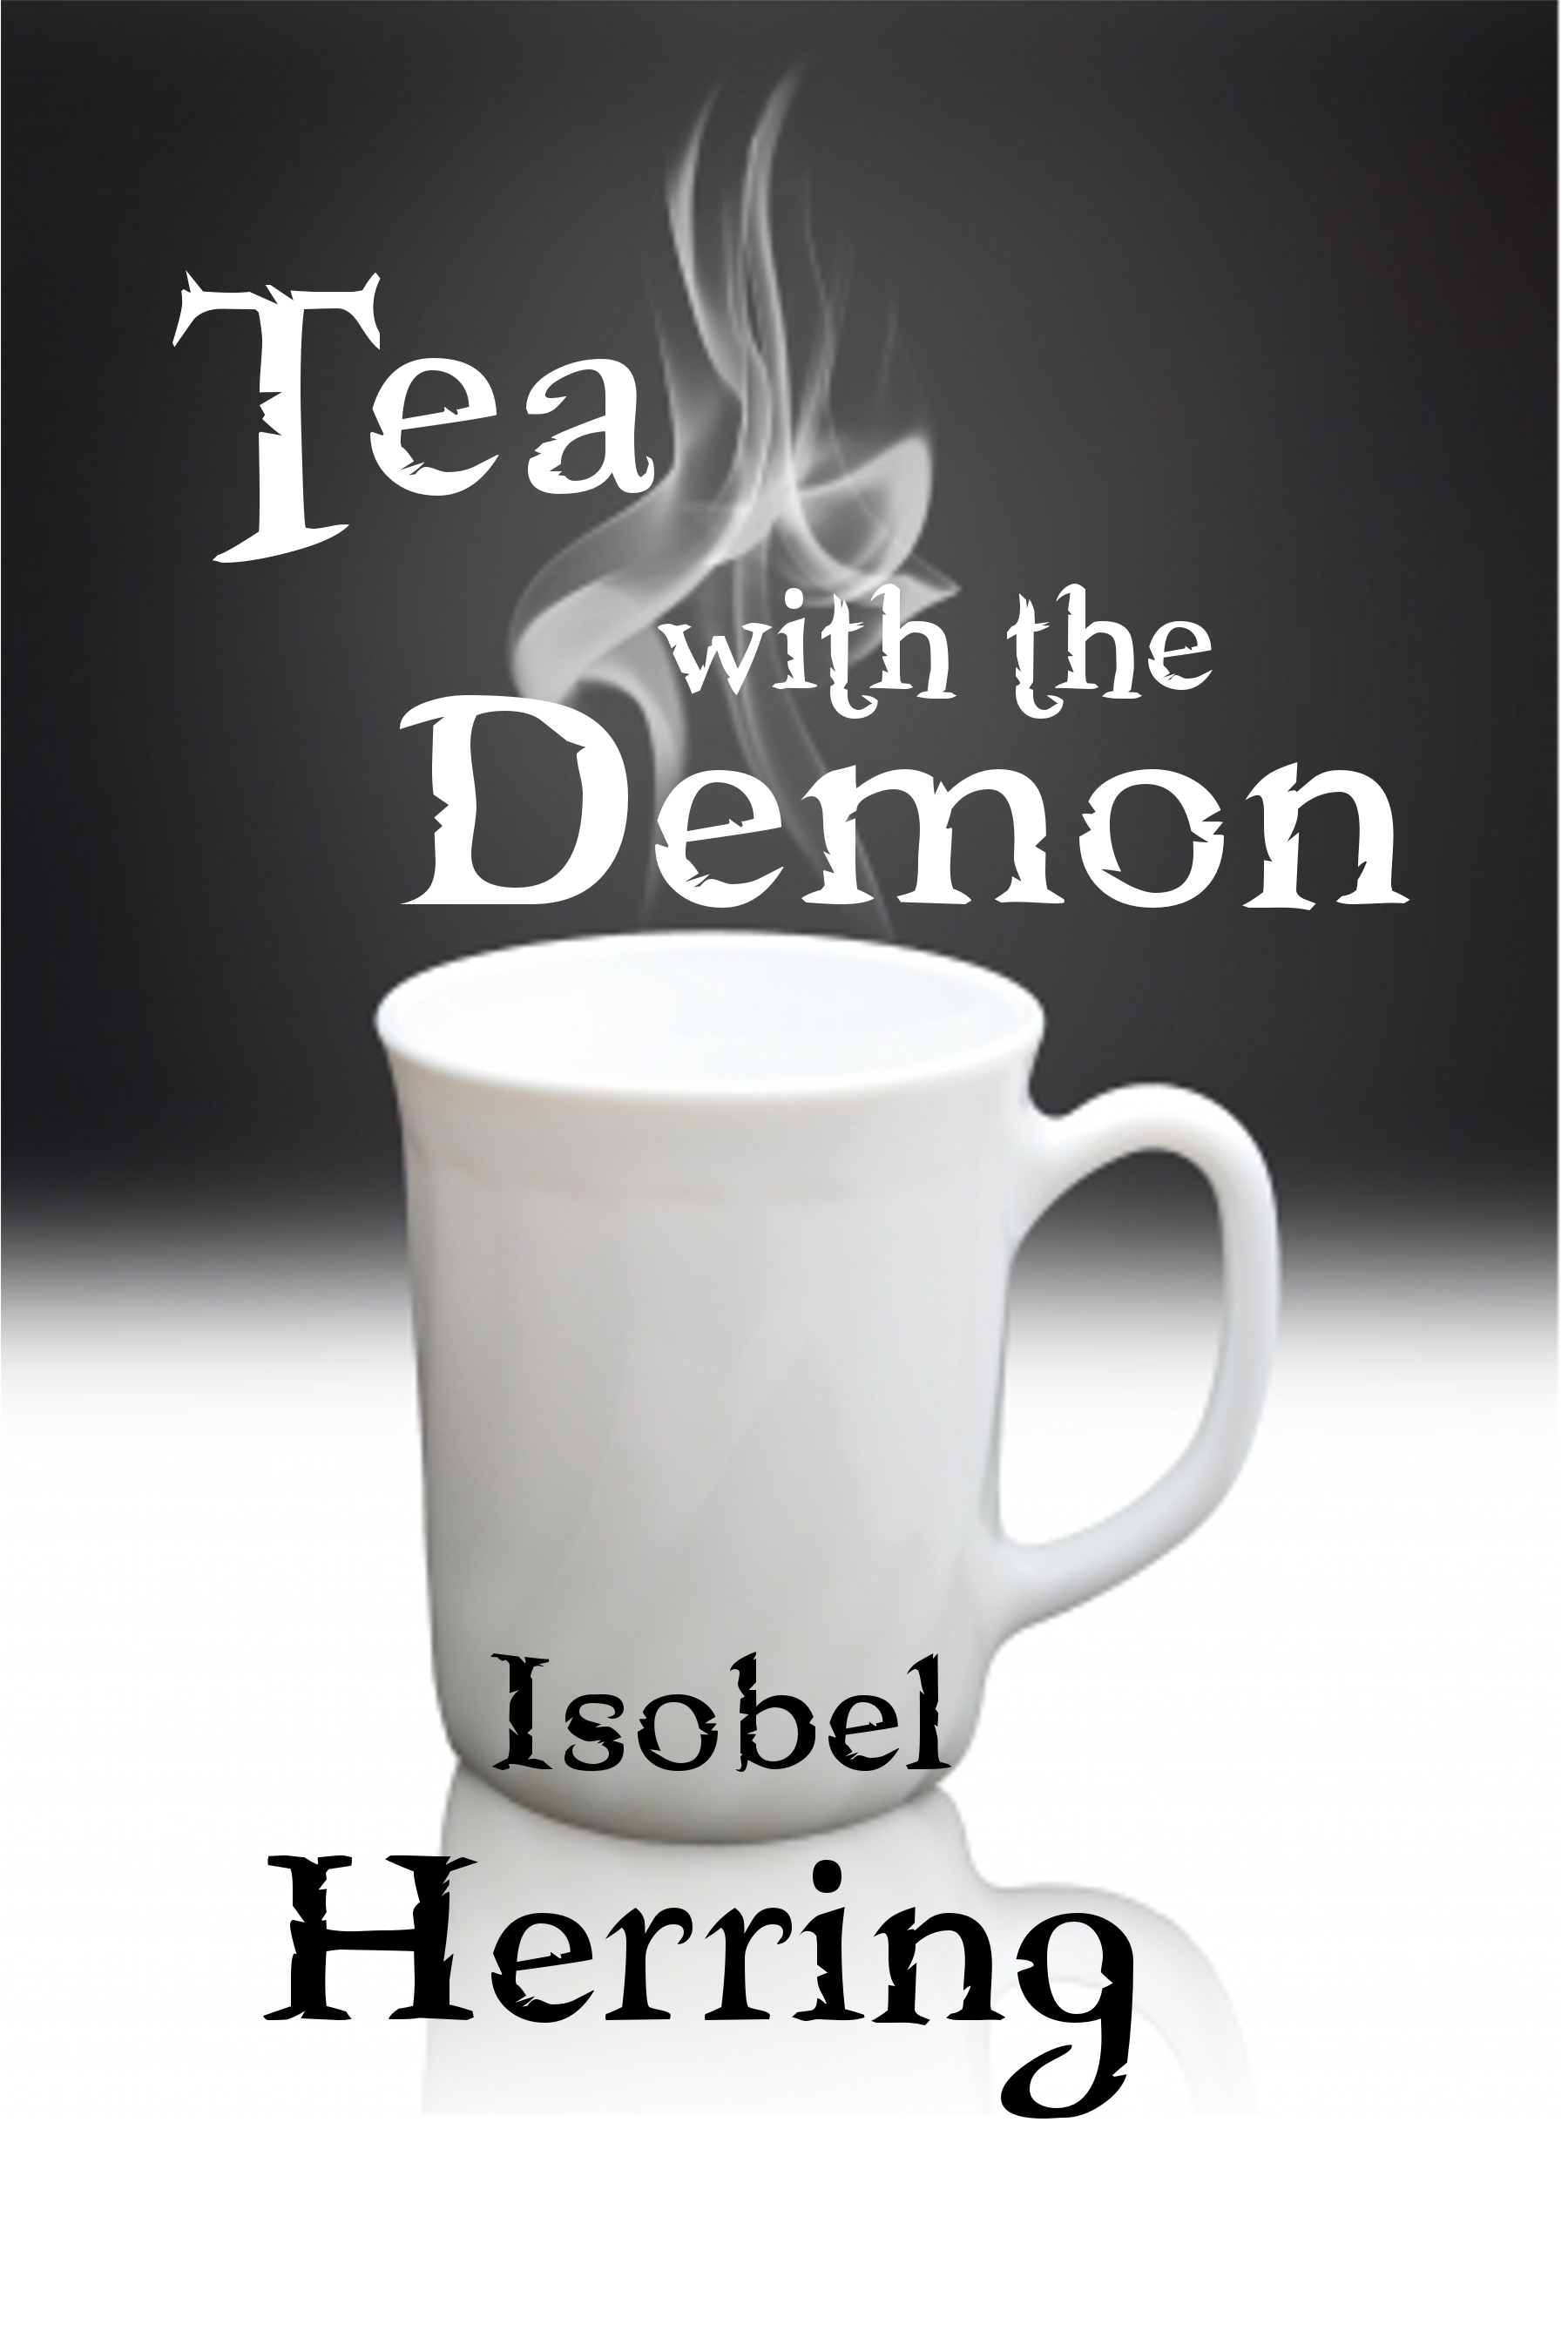 Tea with the Demon